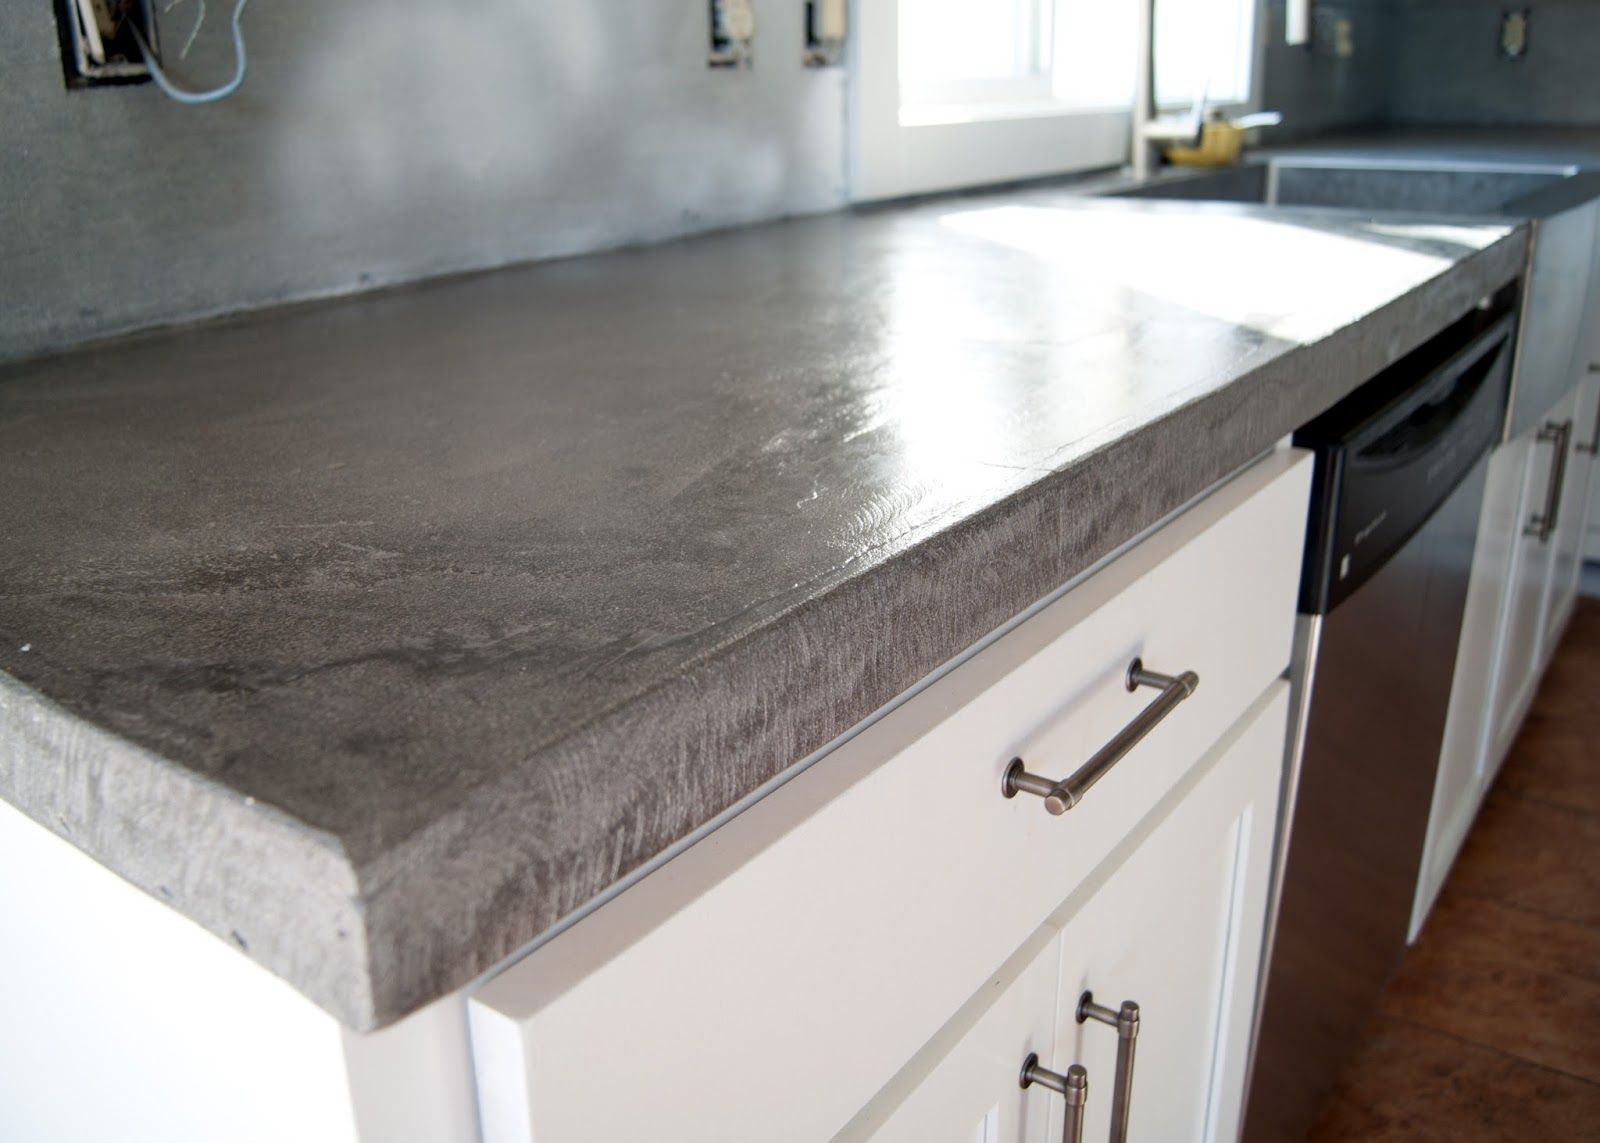 How To Build A Laminate Countertop Diy Concrete Counters Poured Over Laminate Diy Concrete